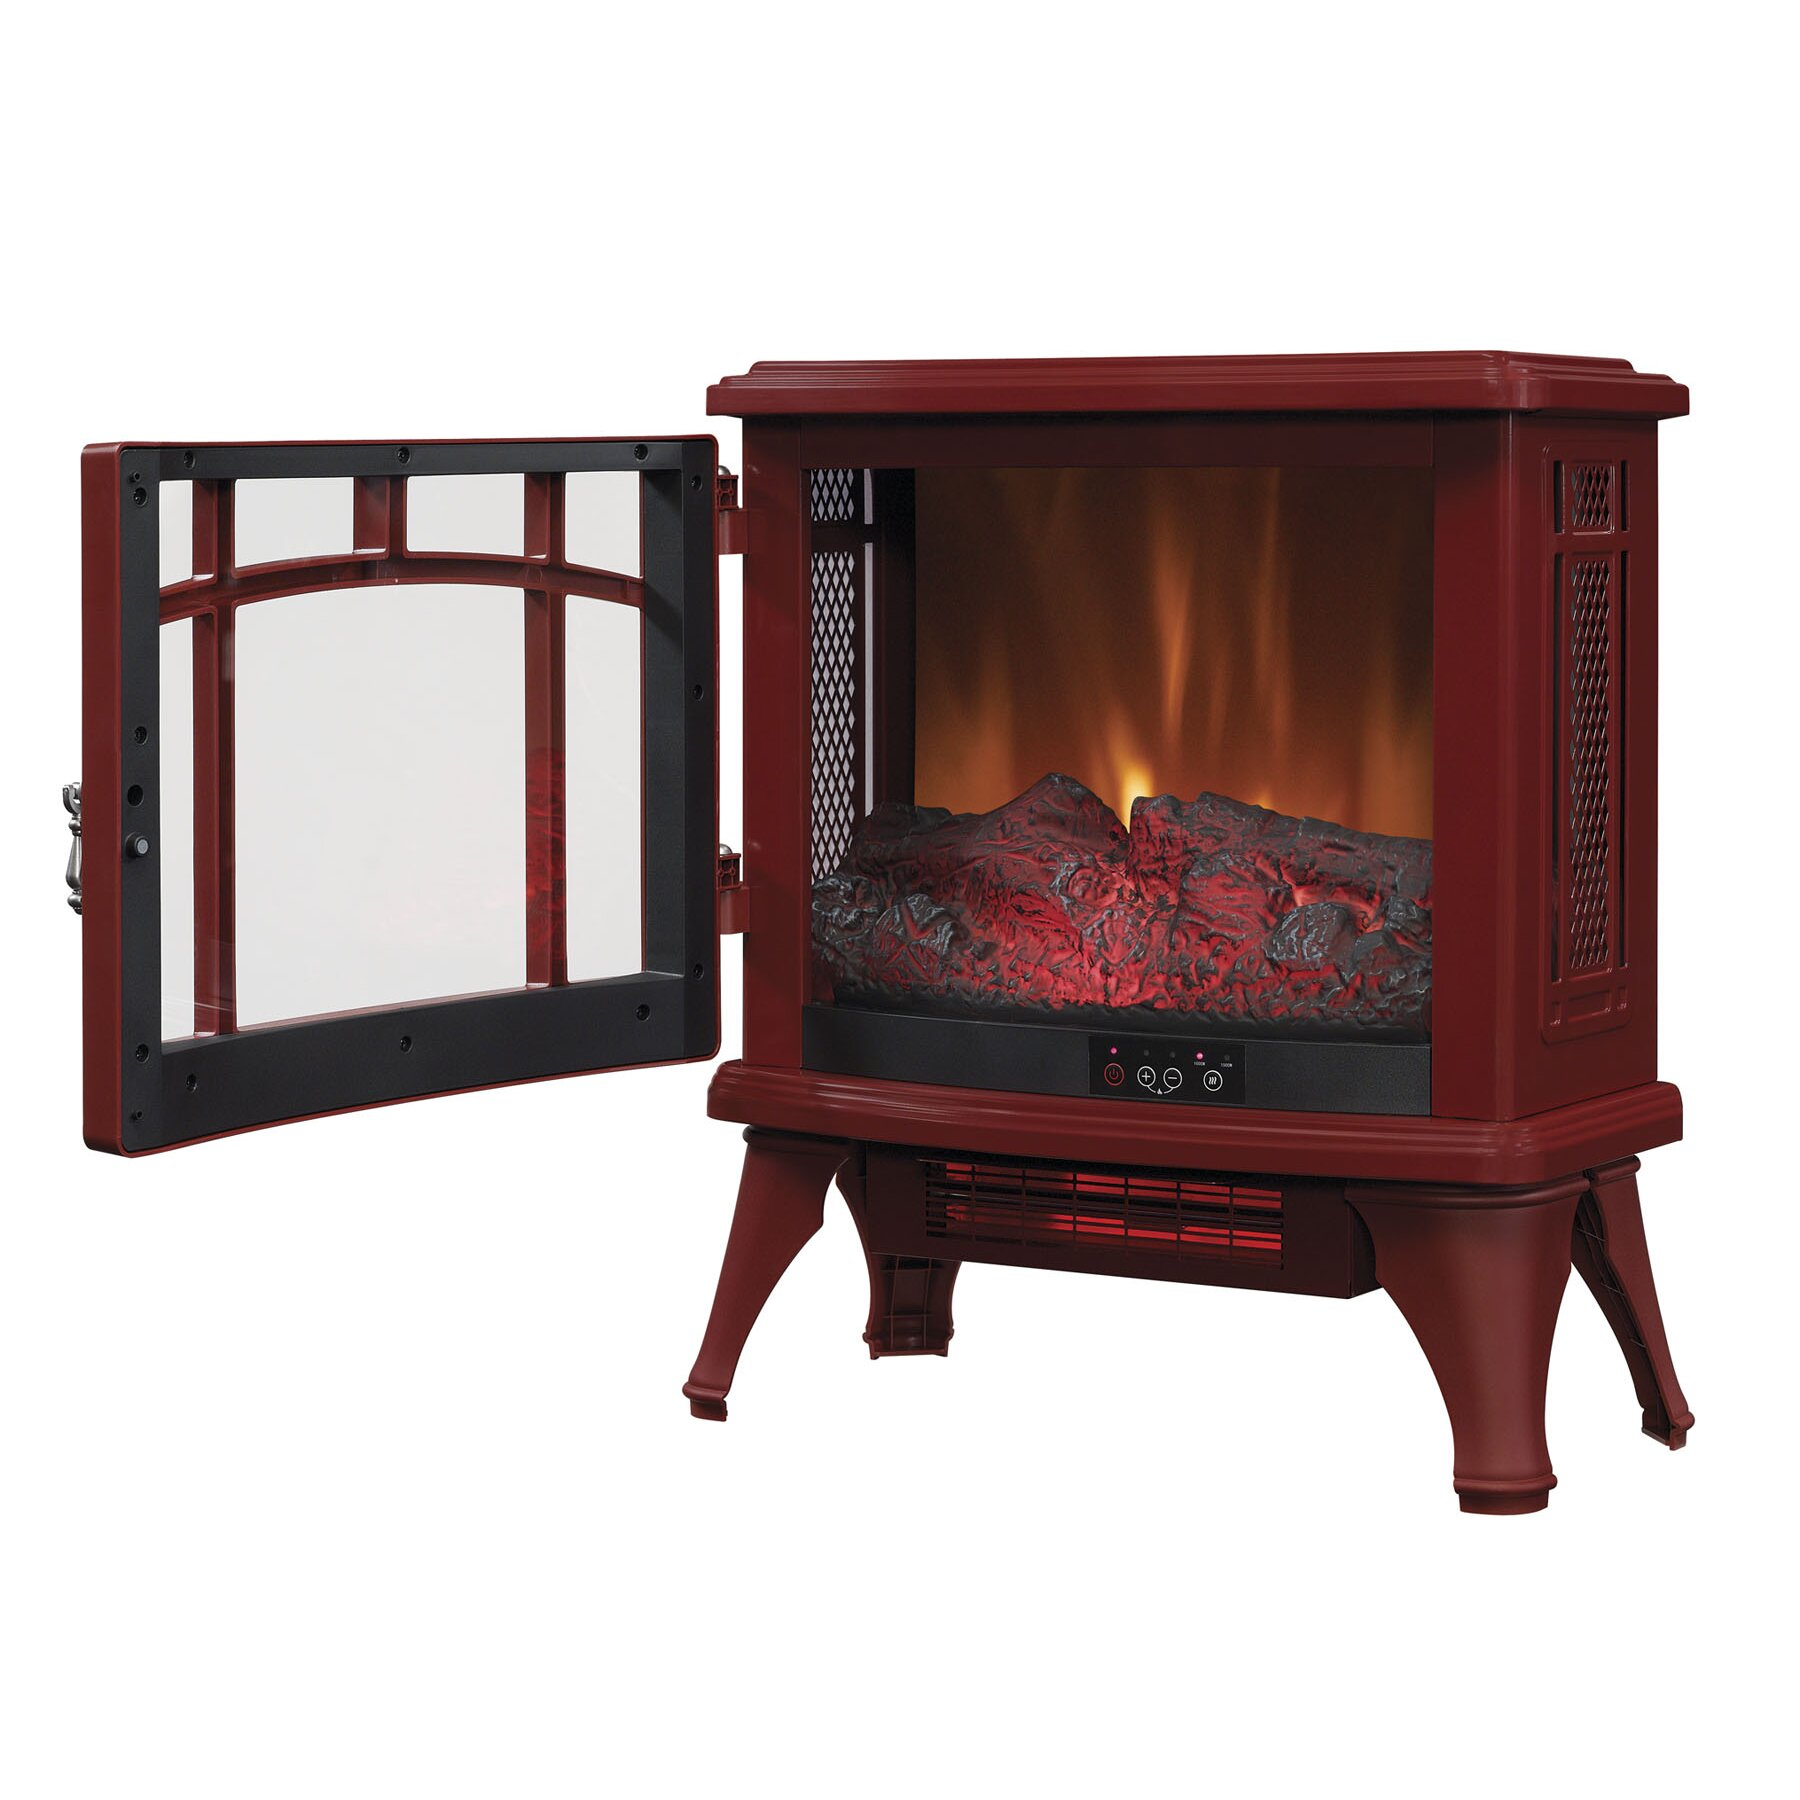 Duraflame Infrared Quartz Fireplace 1 000 Square Foot Electric Stove Reviews Wayfair